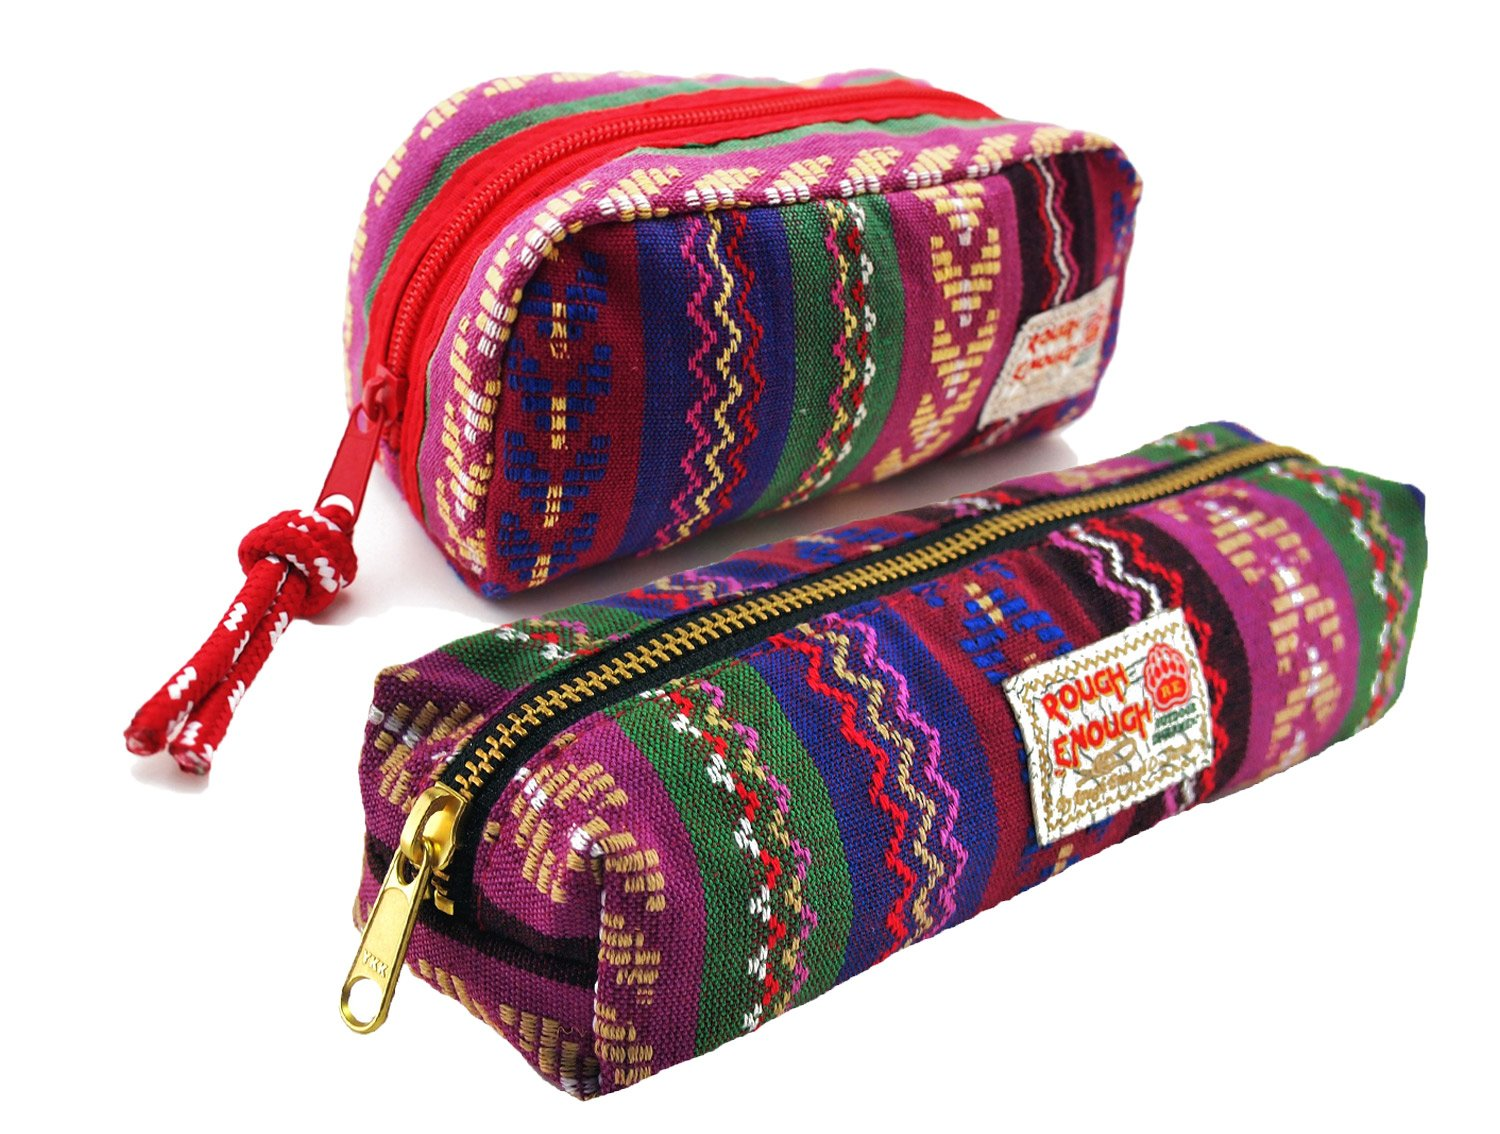 Rough Enough Multi-propose Classic Ethnic Boho Cotton Folk Embroidery Small Travel Cosmetic Pouch Bag Holder Stationary Accessories Organizer Storage with Zipper for Girls Women at School Outdoor Set